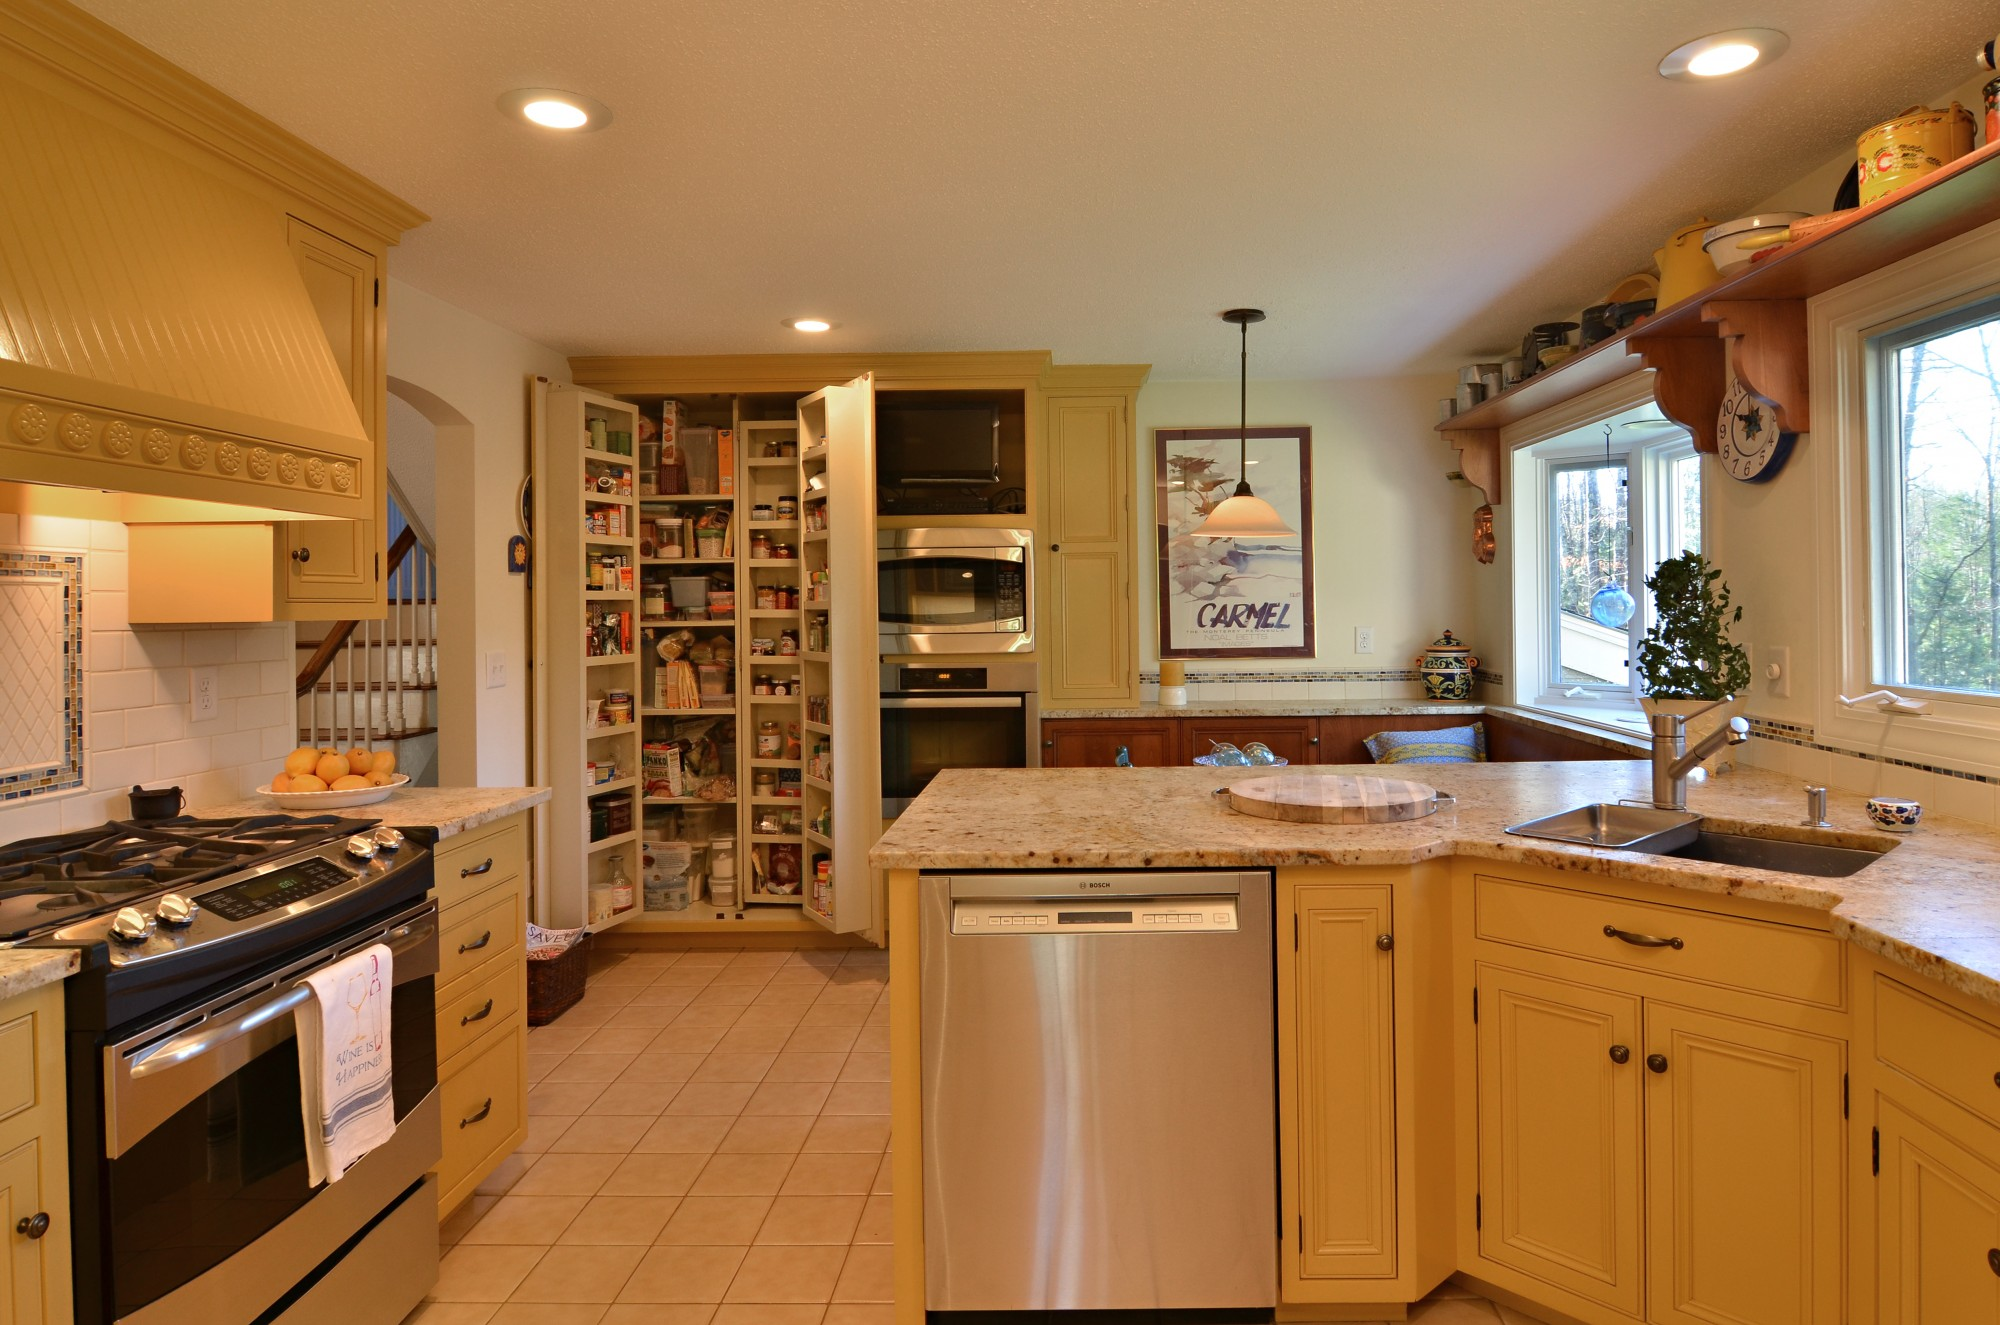 storybrook pantry open | currier kitchens